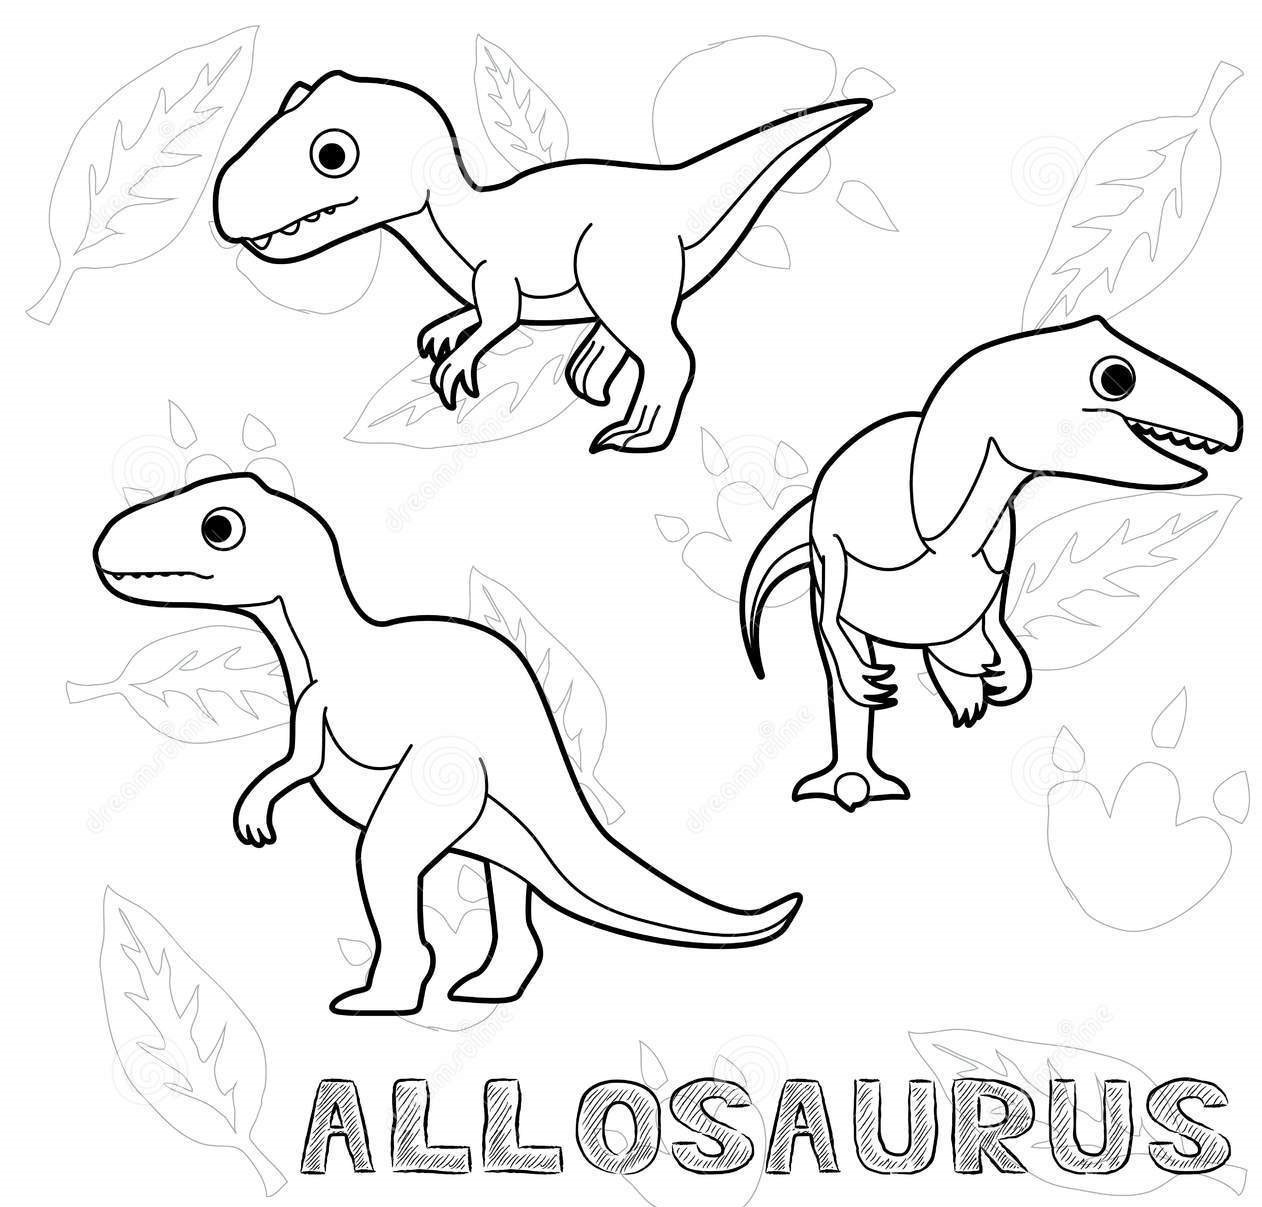 How to draw Allosuarus Coloring Page